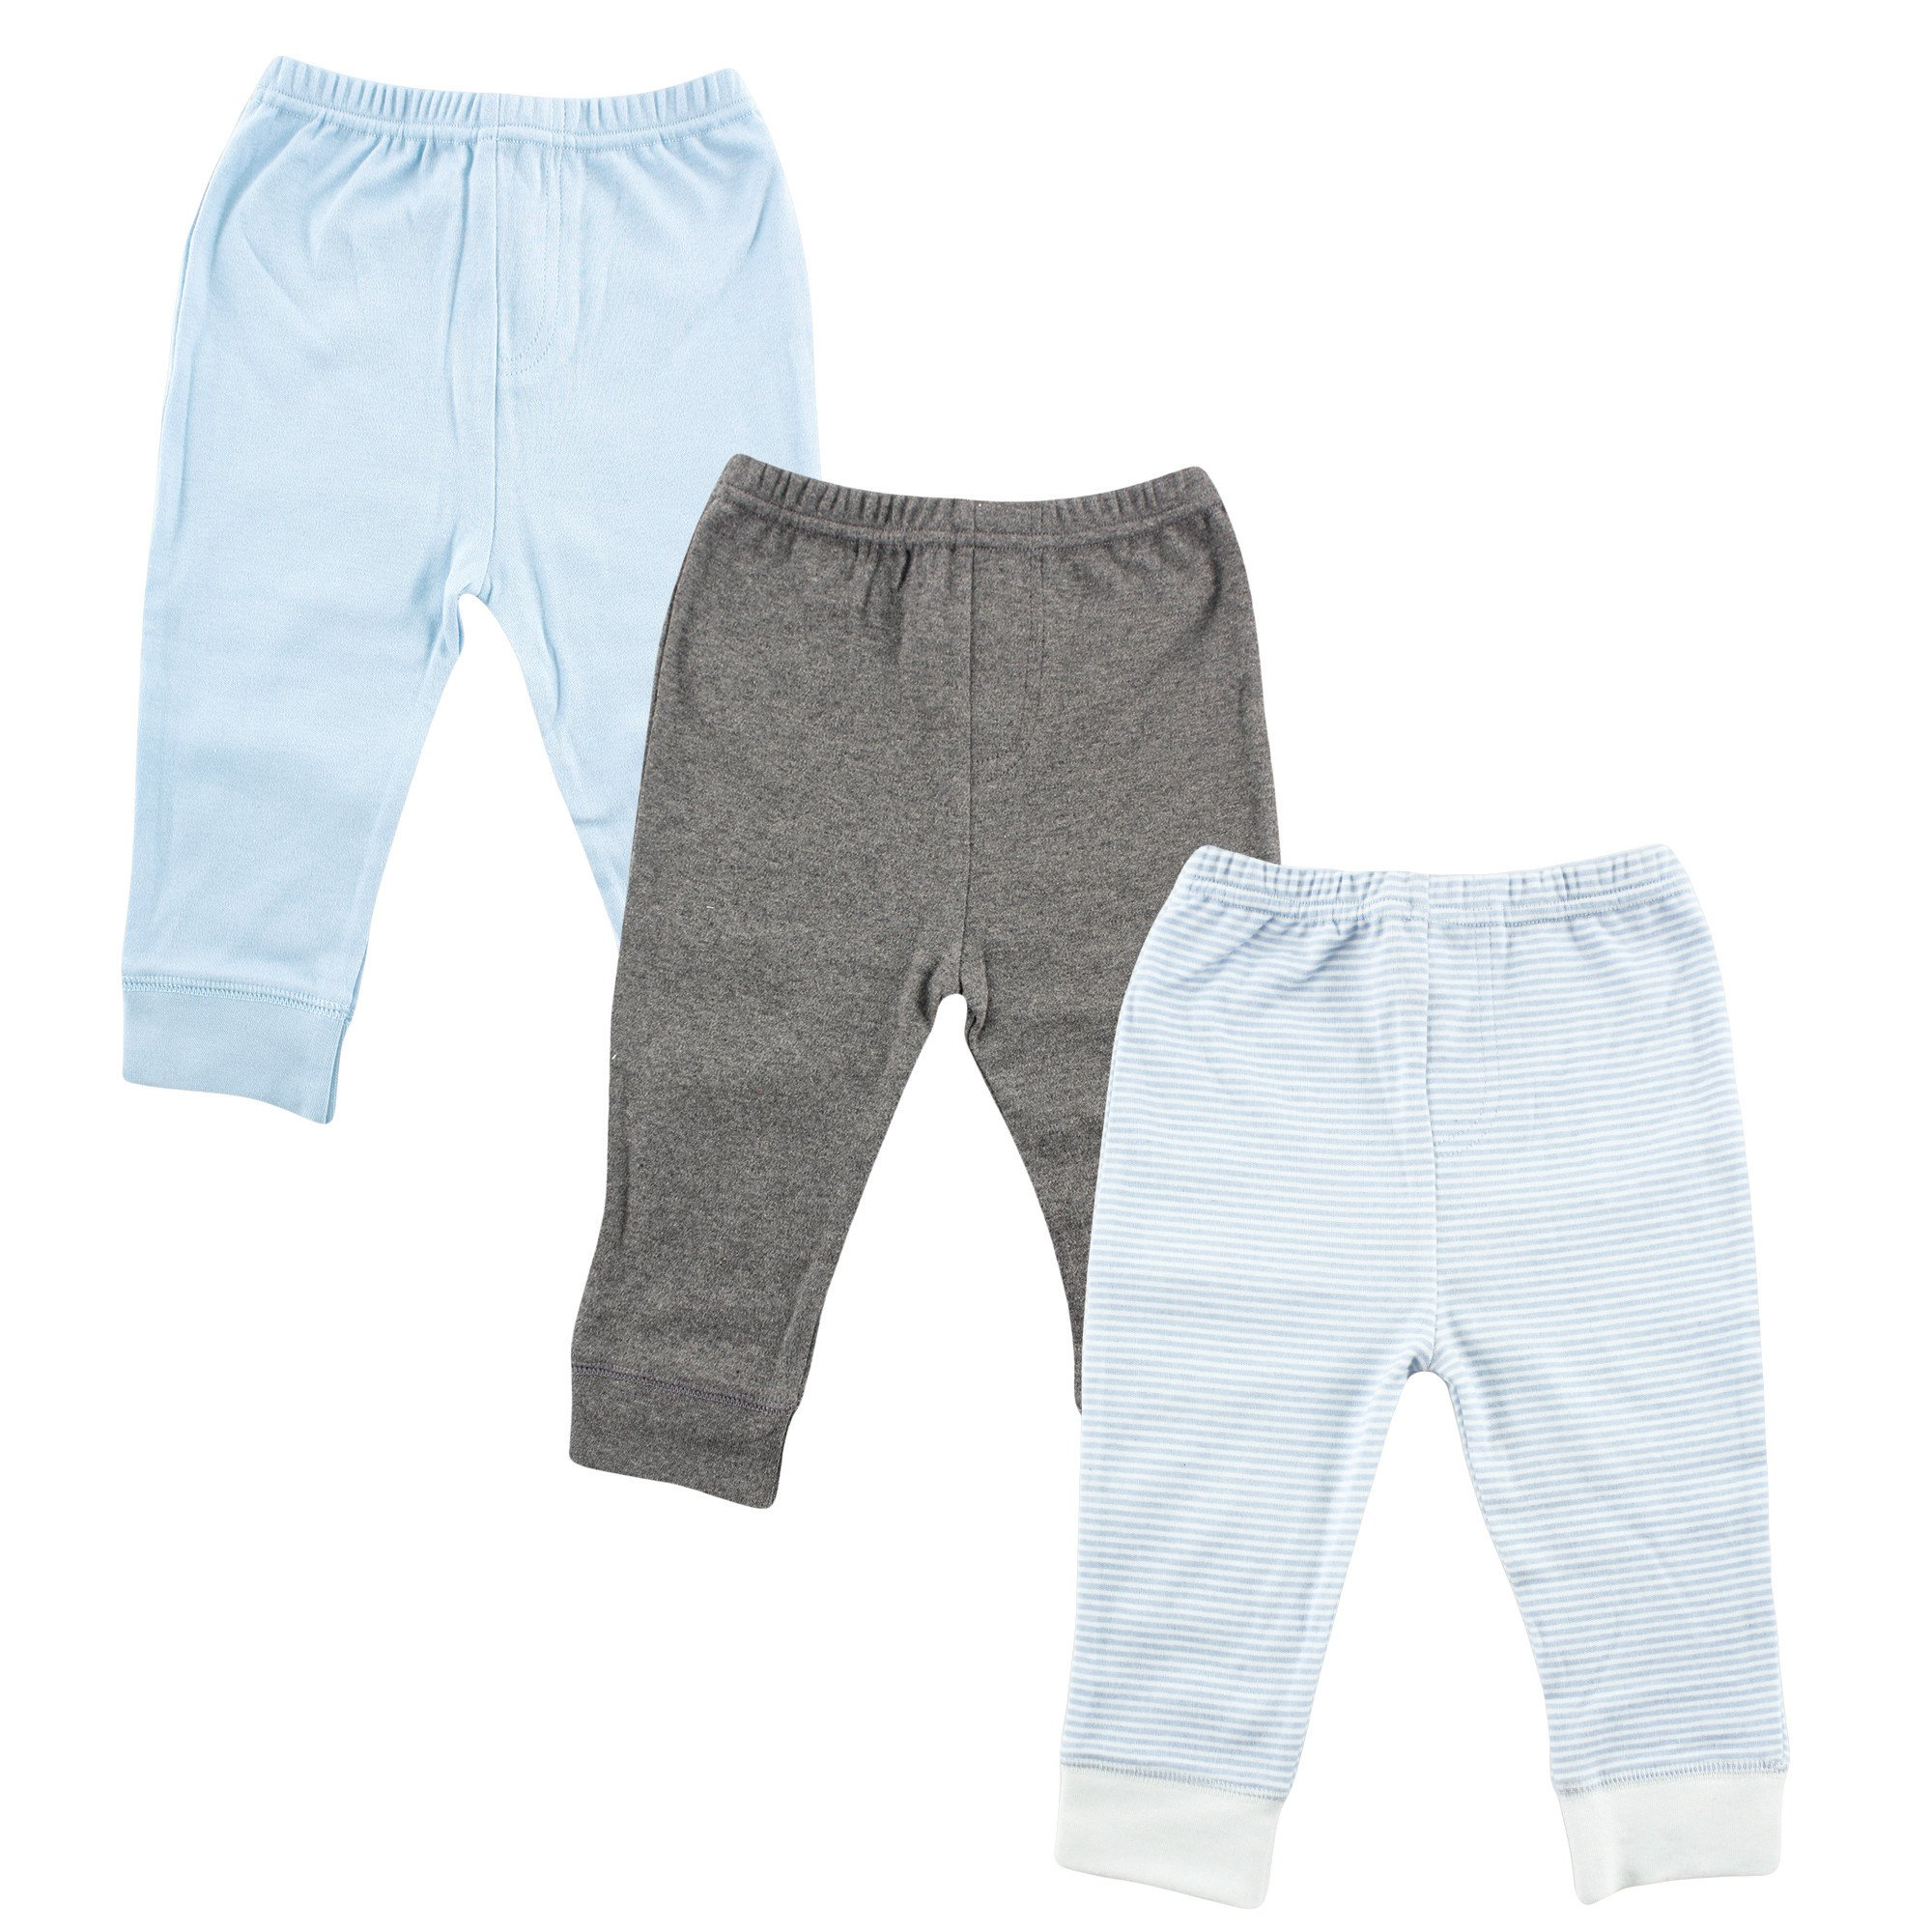 Luvable Friends Baby Tapered Ankle Pants, Light Blue Stripes, 5T